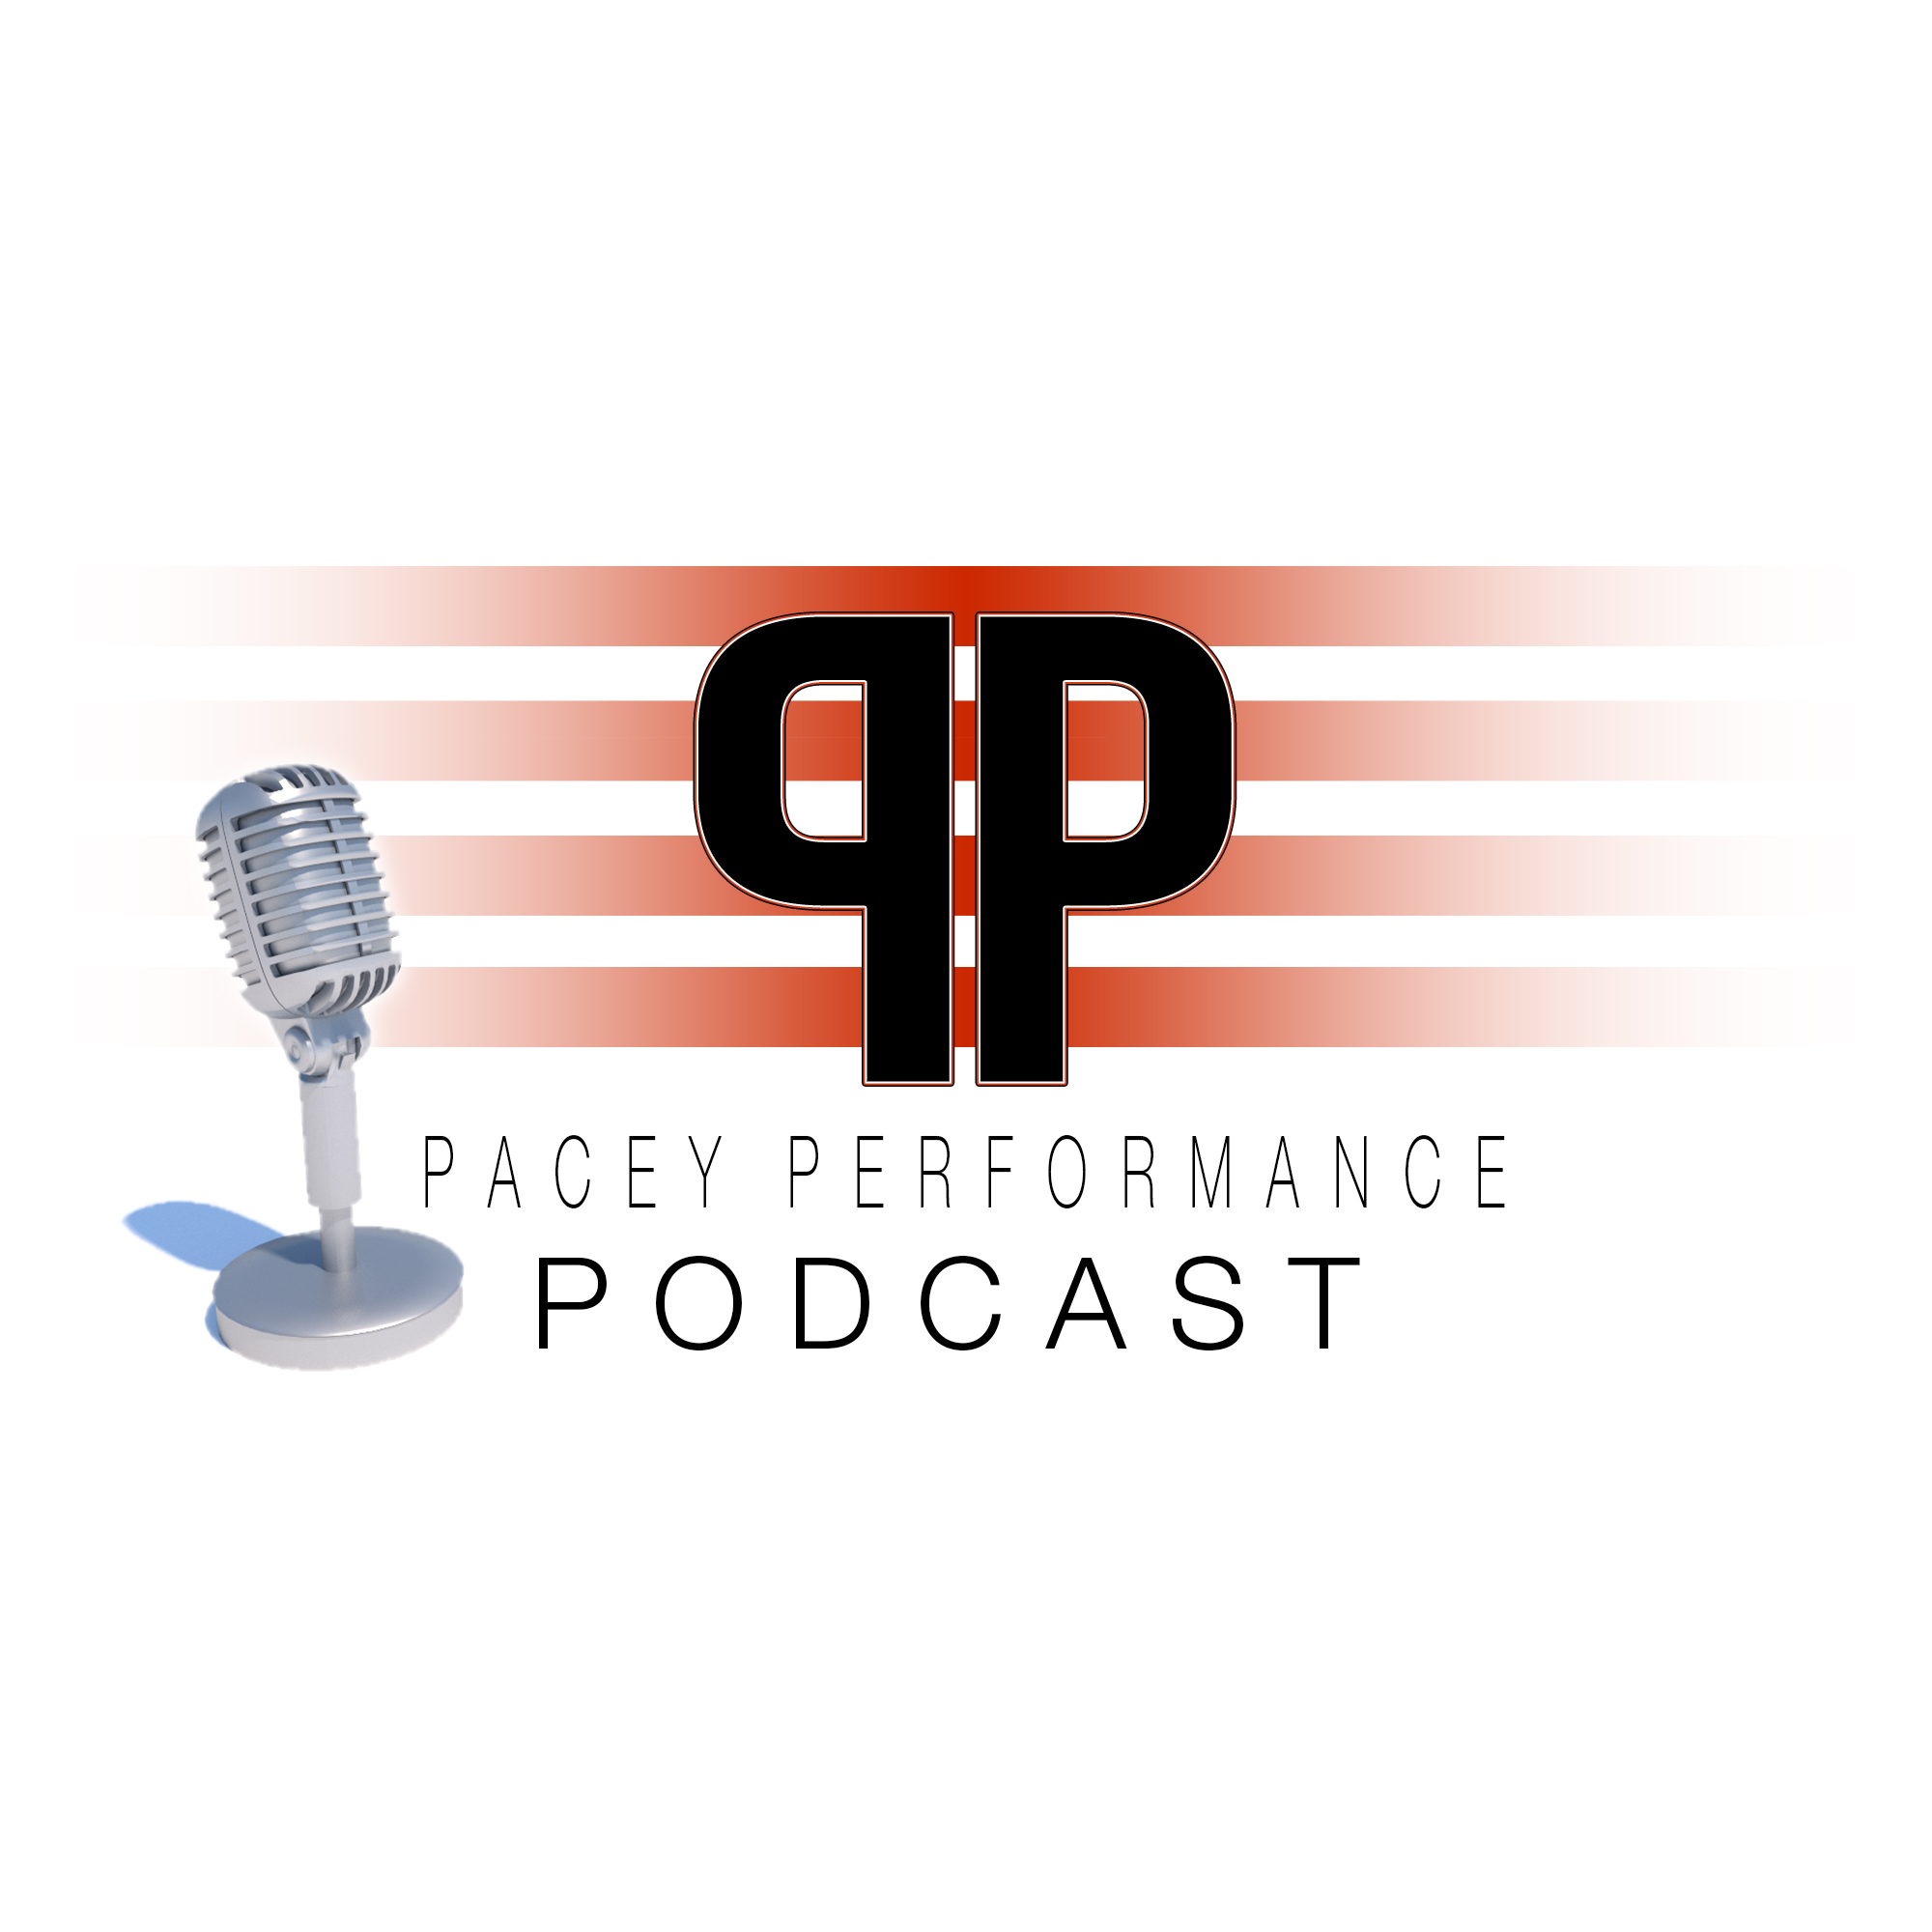 Pacey Performance Podcast #19 - Darren Burgess